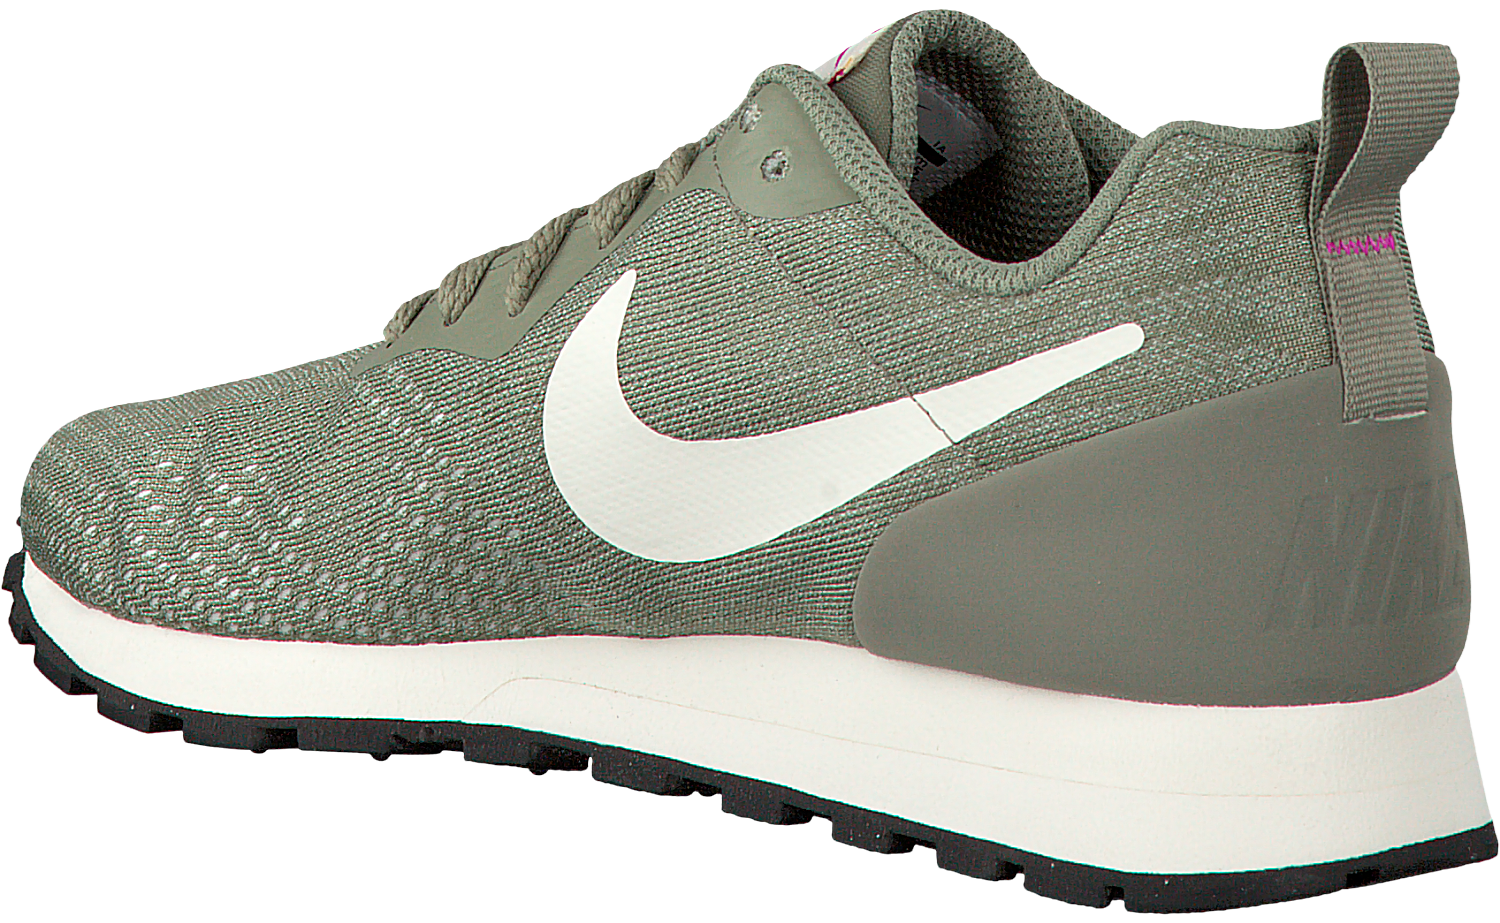 reputable site df180 50b04 Groene NIKE Sneakers MD RUNNER 2 ENG MESH WMNS - large. Next